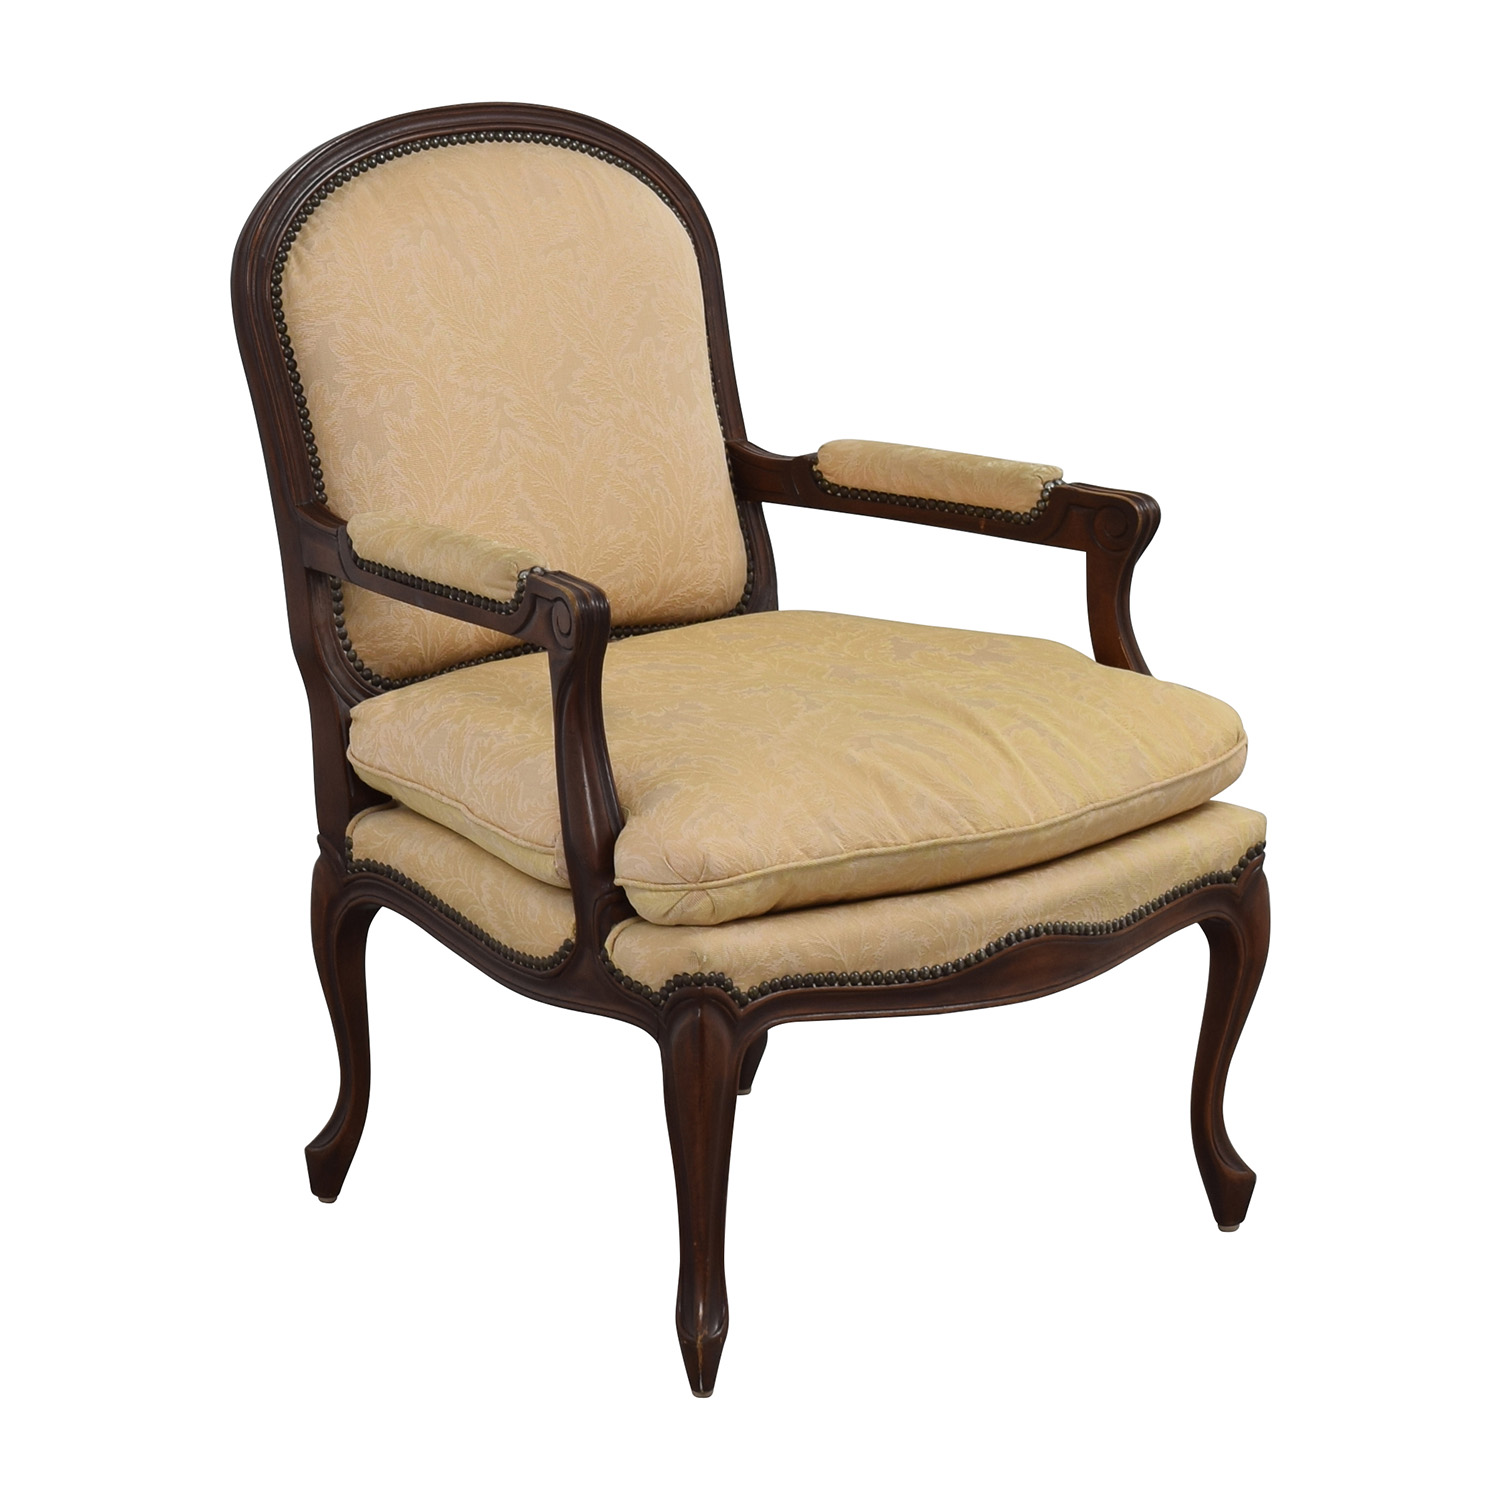 Shop Chairs 75 Off Gold Floral Jacquard Upholstered Studded Accent